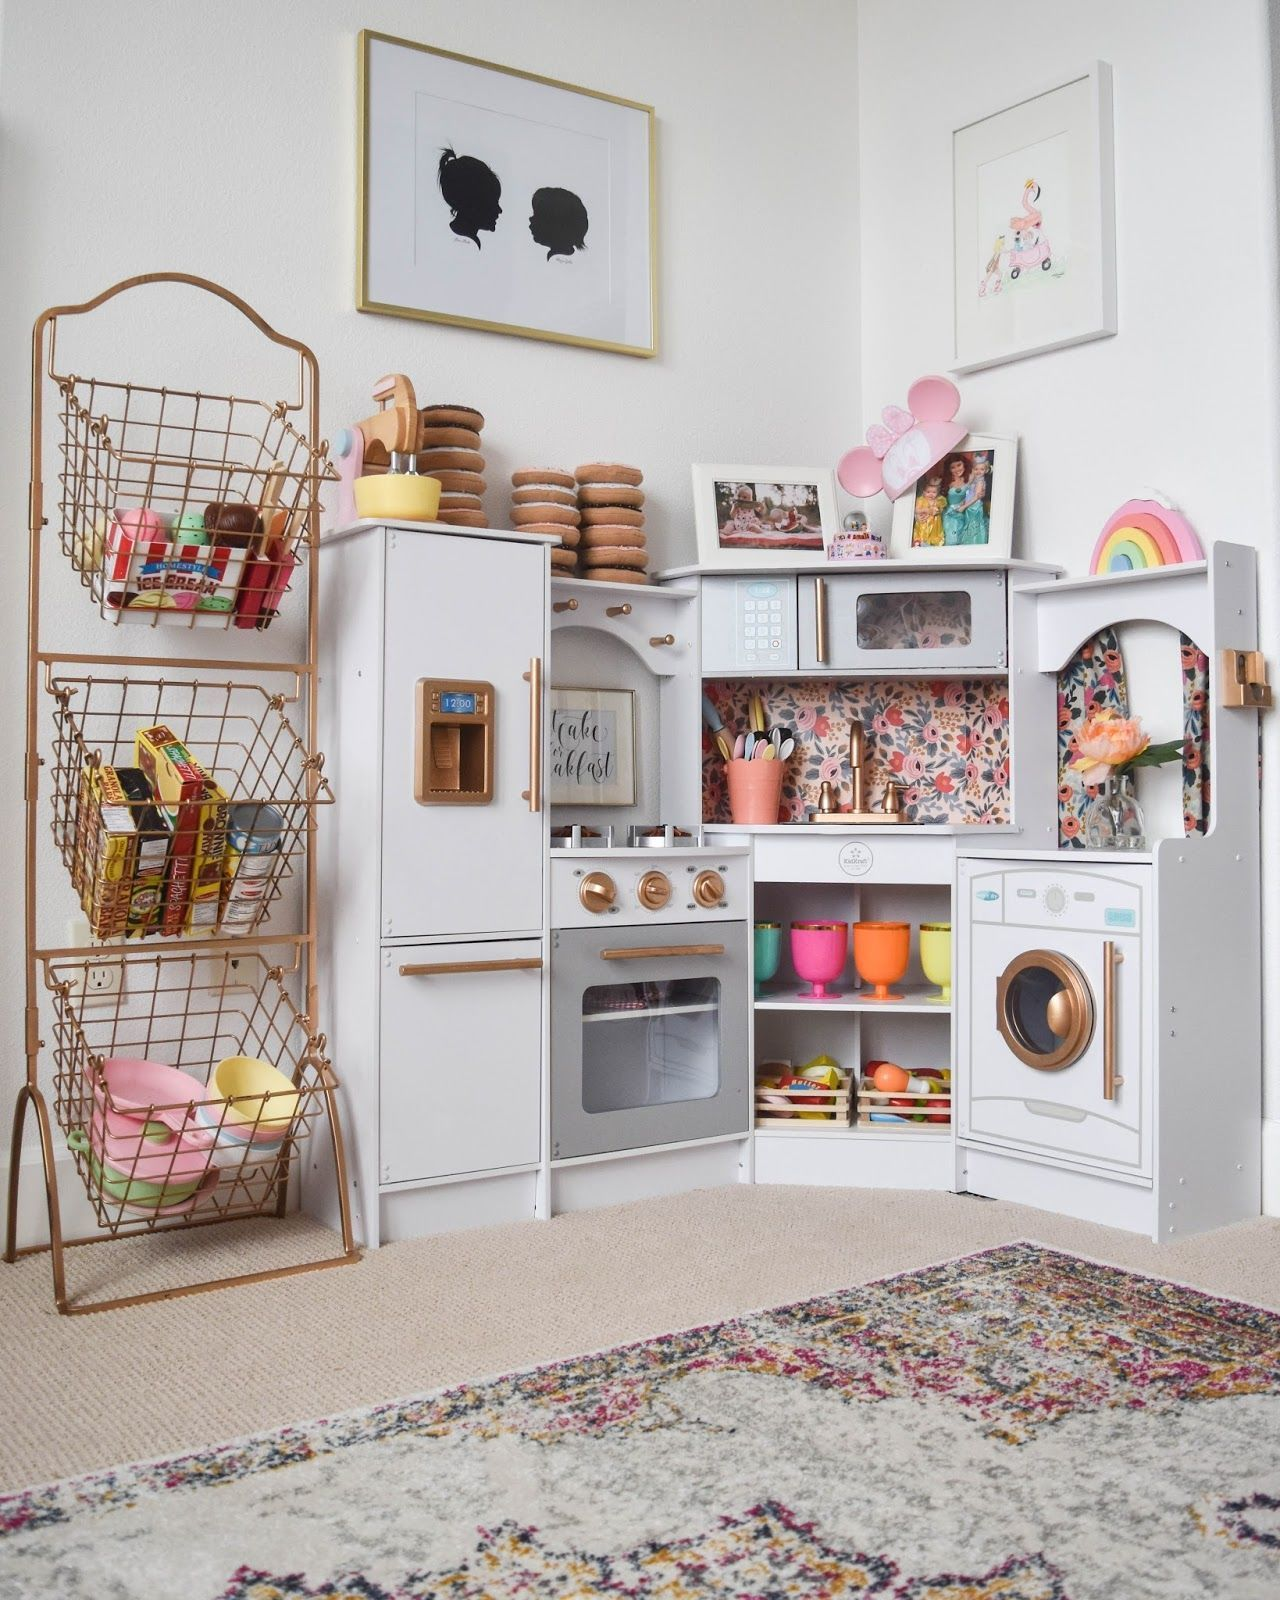 How To Organize Your Kitchen With 12 Clever Ideas: 13 Clever And Stylish Ways To Organize Your Kids' Toys